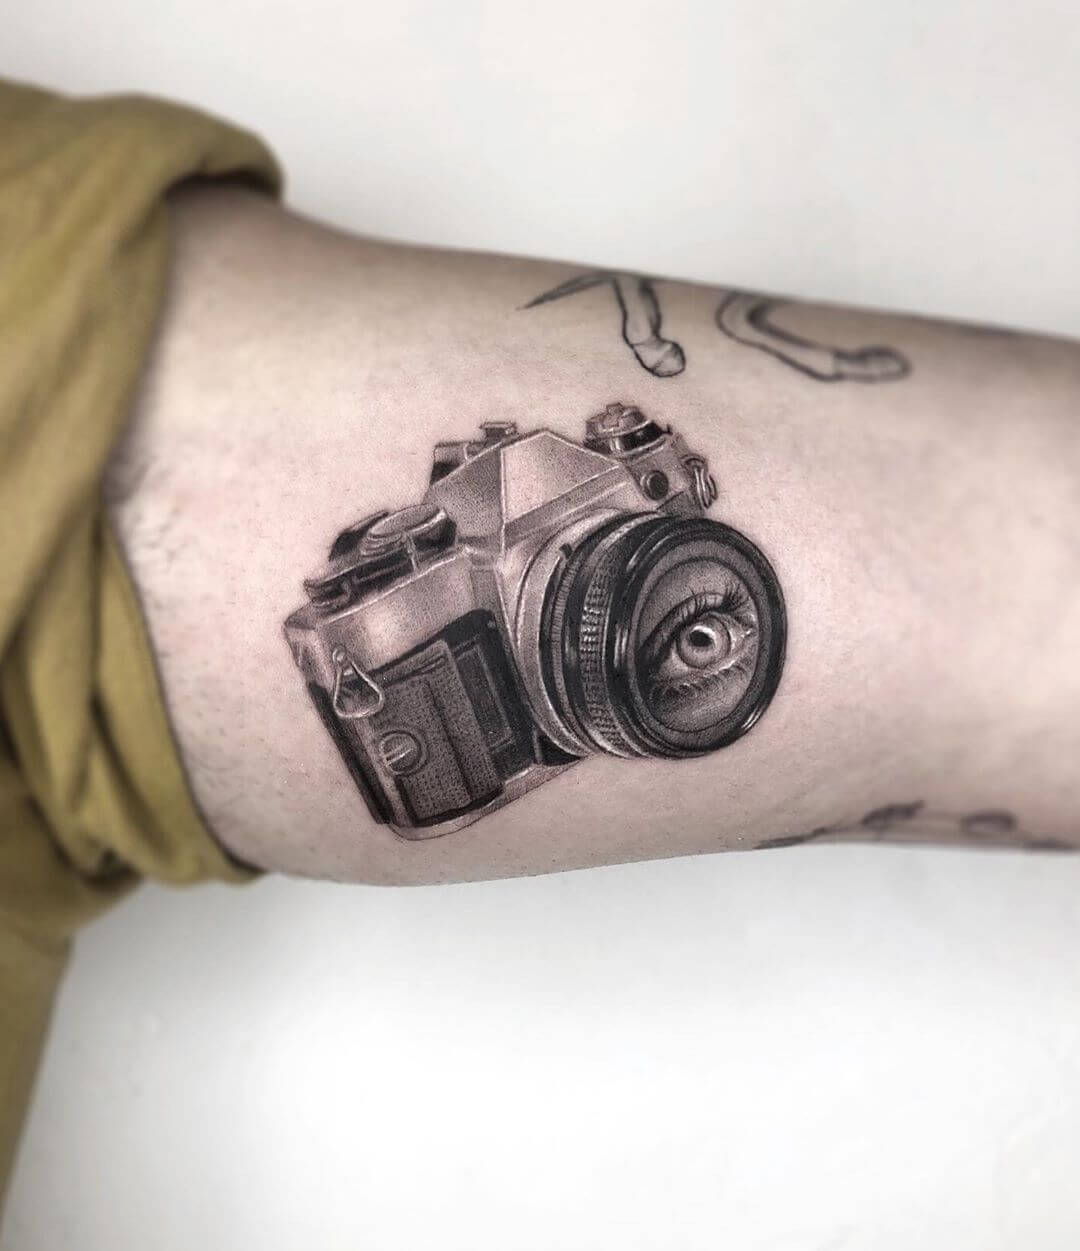 Dotwork tattoo by Maya Gat of an eye in a camera lens